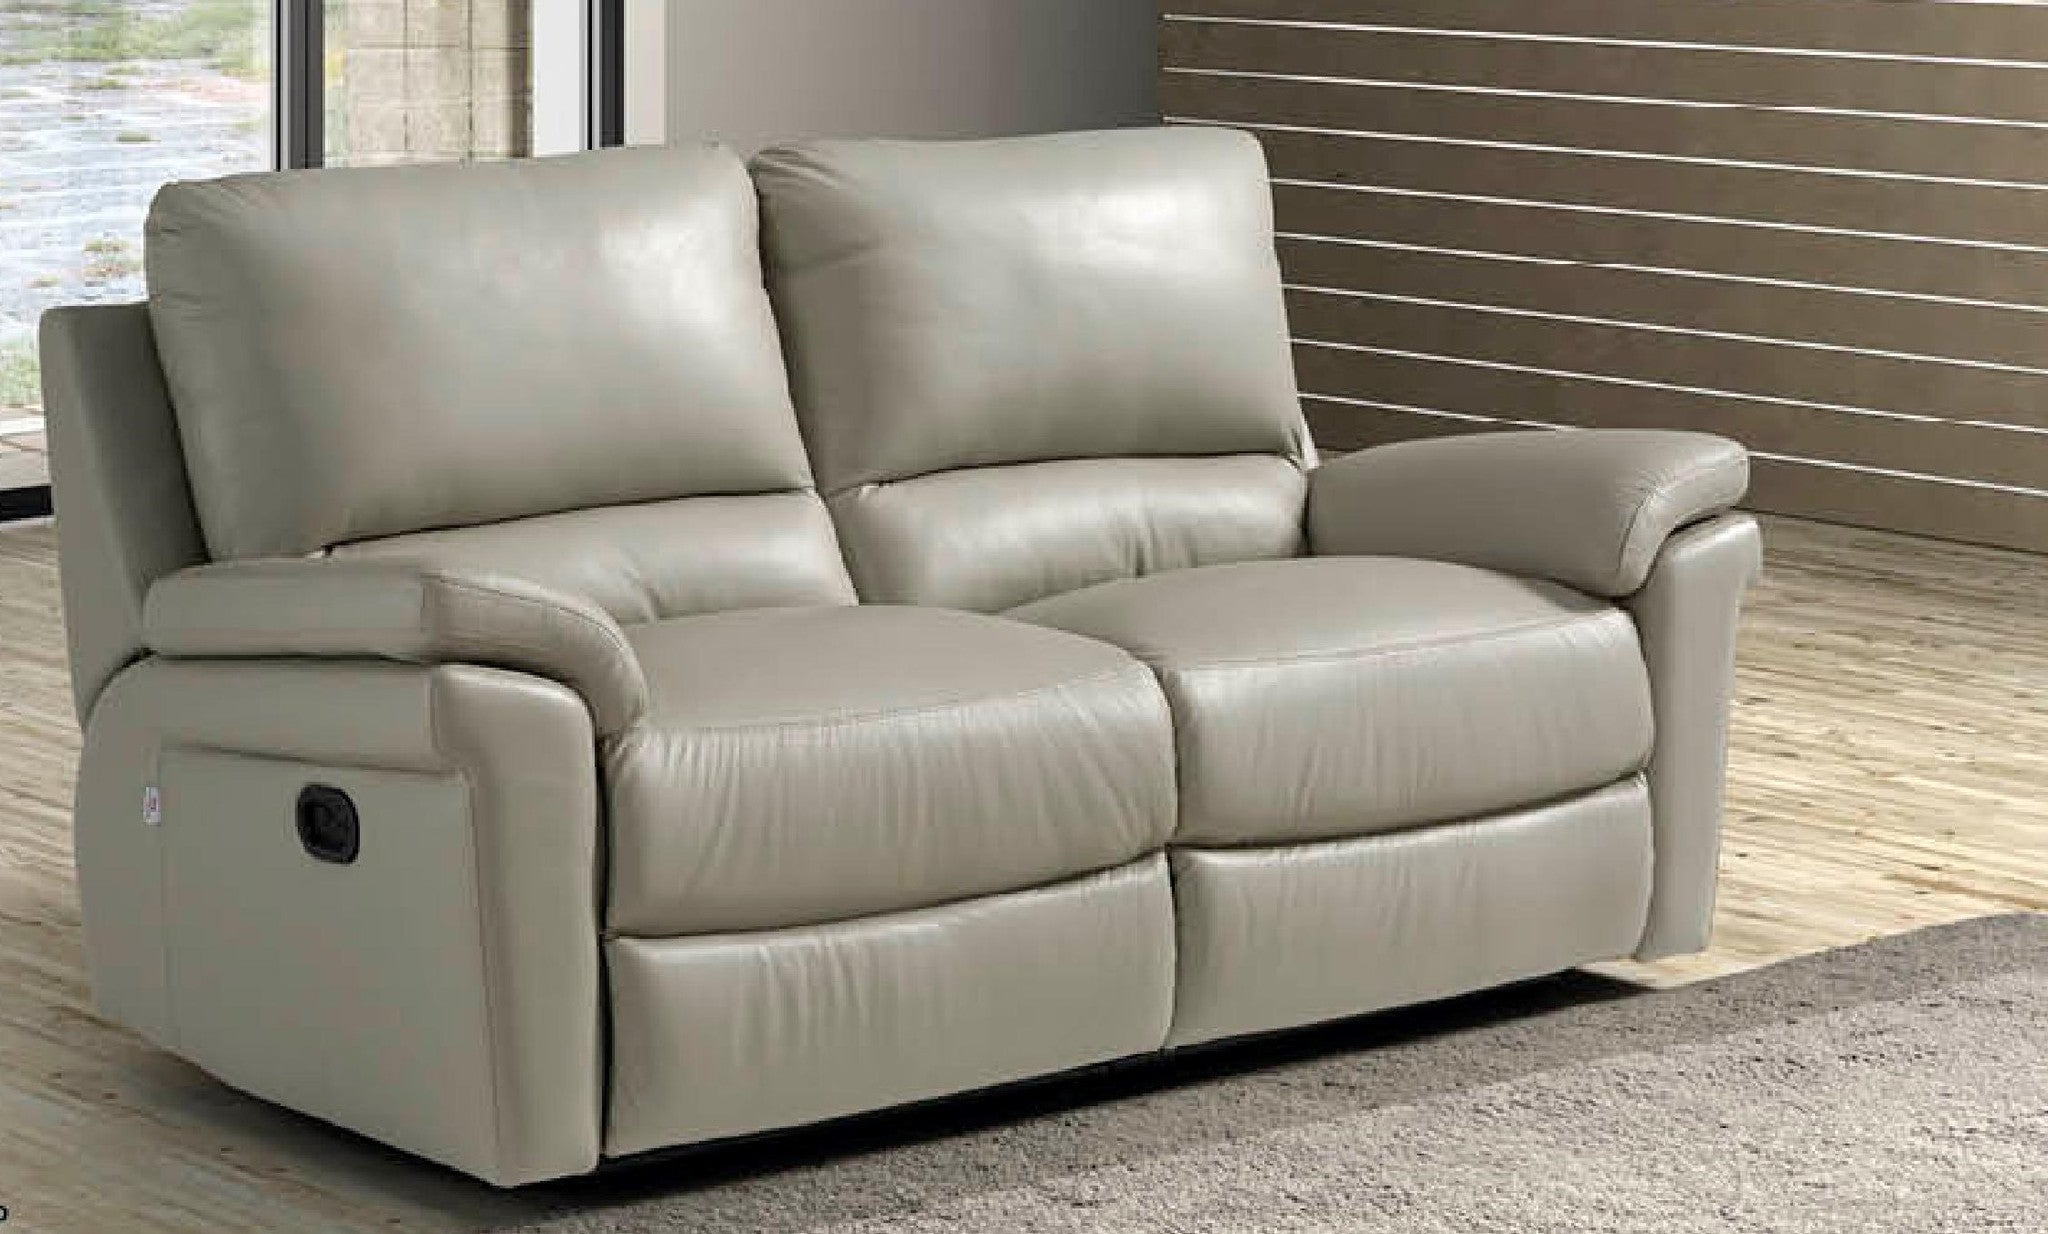 Italian Leather Sofas in Mansfield